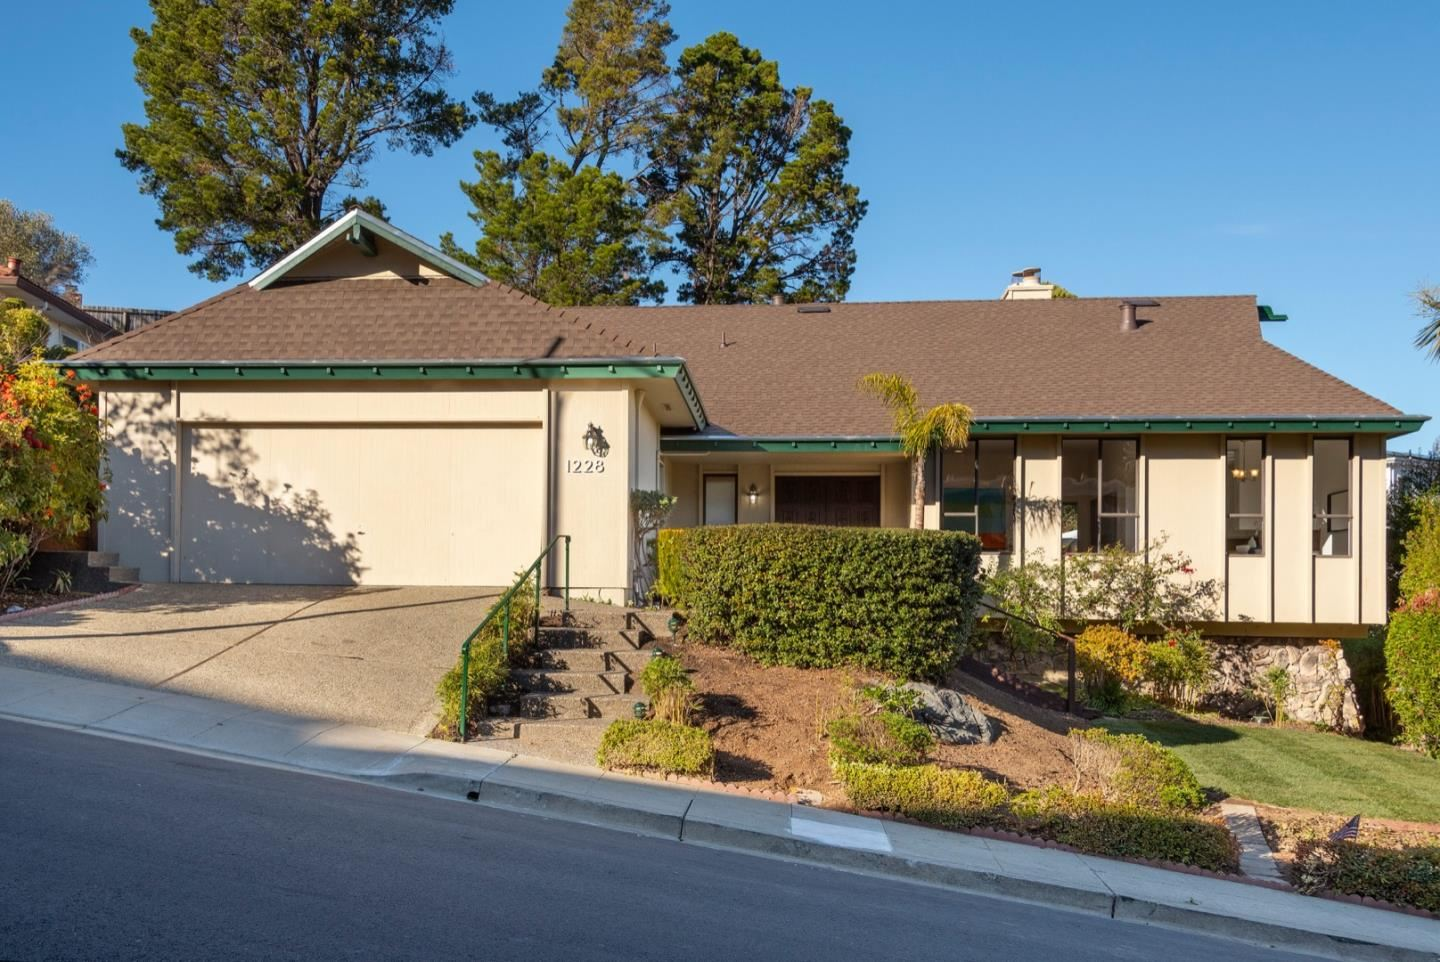 Photo for 1228 Lake ST, MILLBRAE, CA 94030 (MLS # ML81823782)